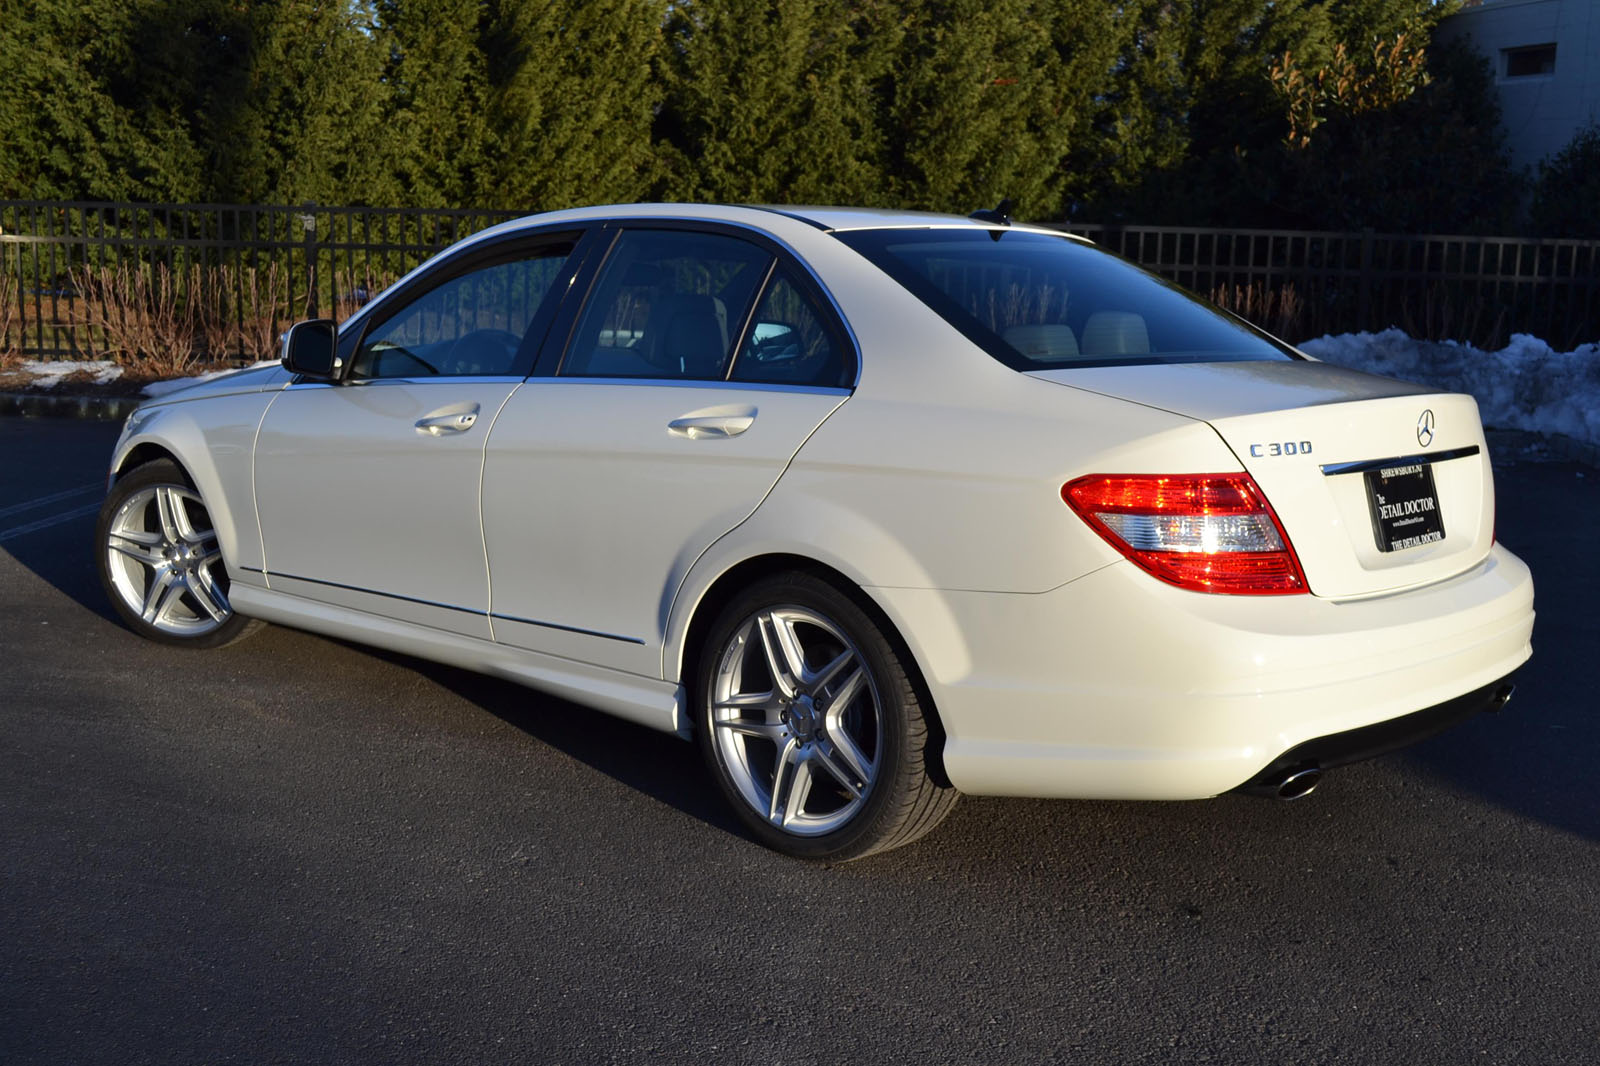 Mercedes benz c300 tire cost fiat world test drive for Mercedes benz c300 cost